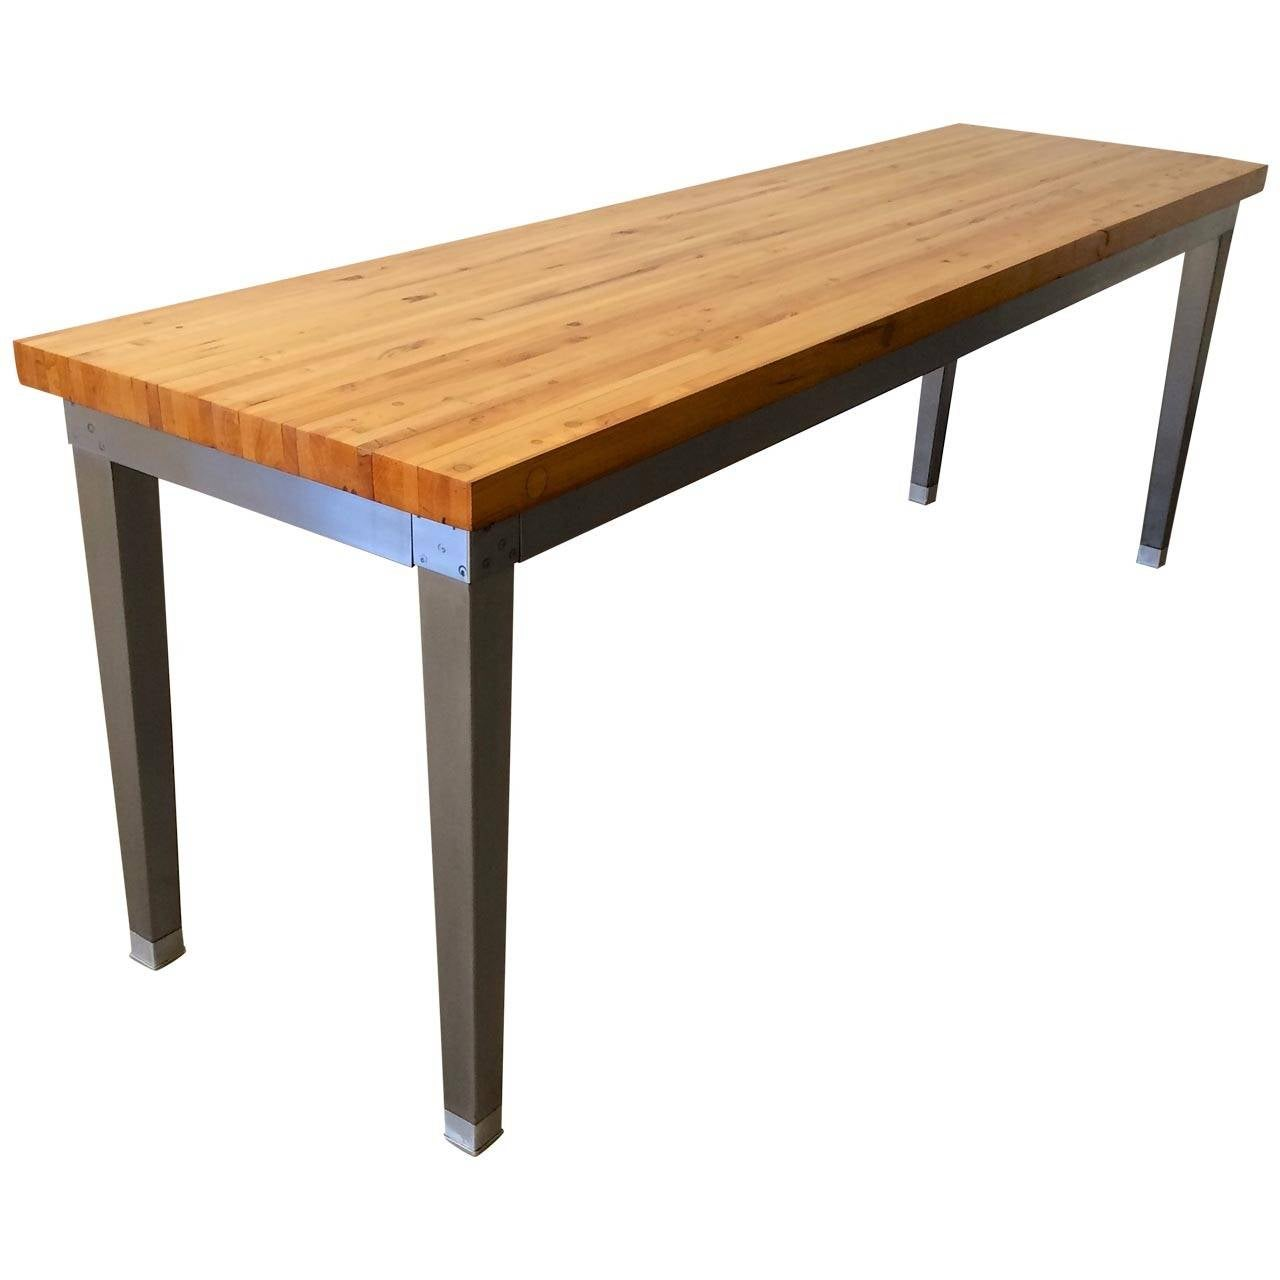 Vintage industrial butcher block table at 1stdibs for Furniture work table